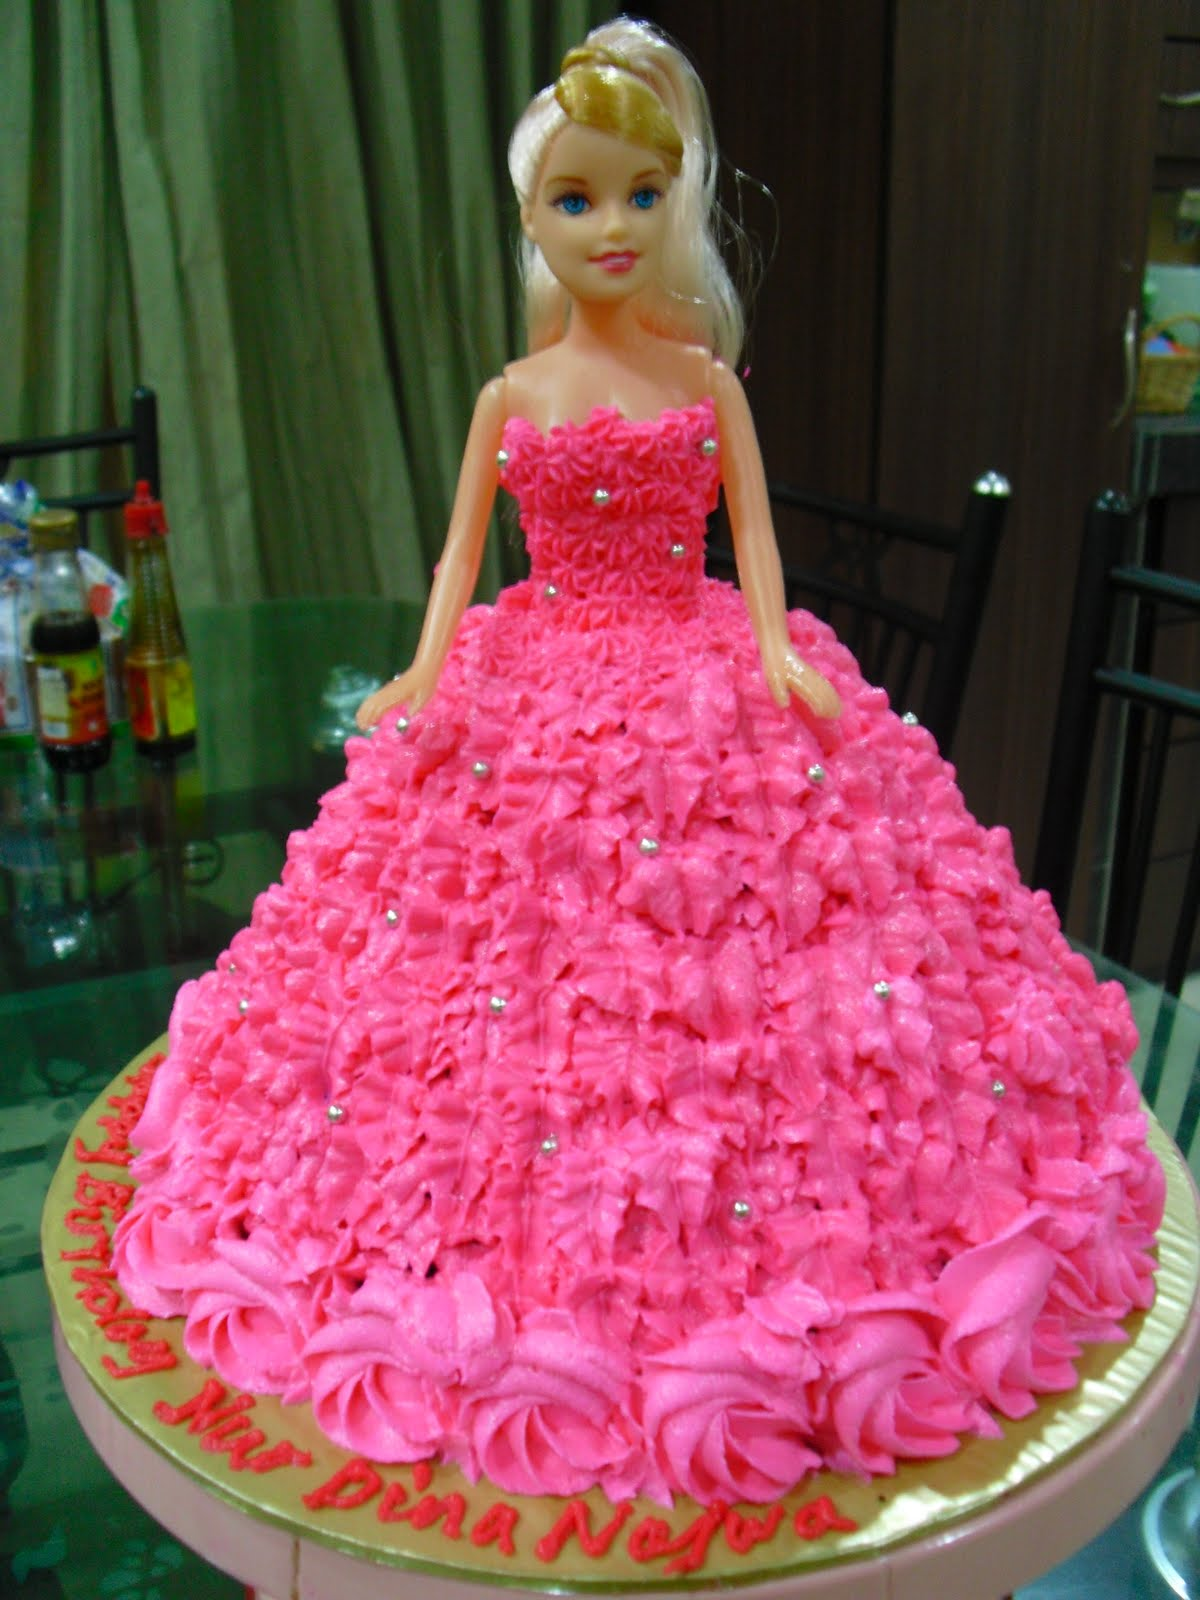 Images Of A Barbie Cake : Diya s Cupcake: Barbie doll for the b day girl